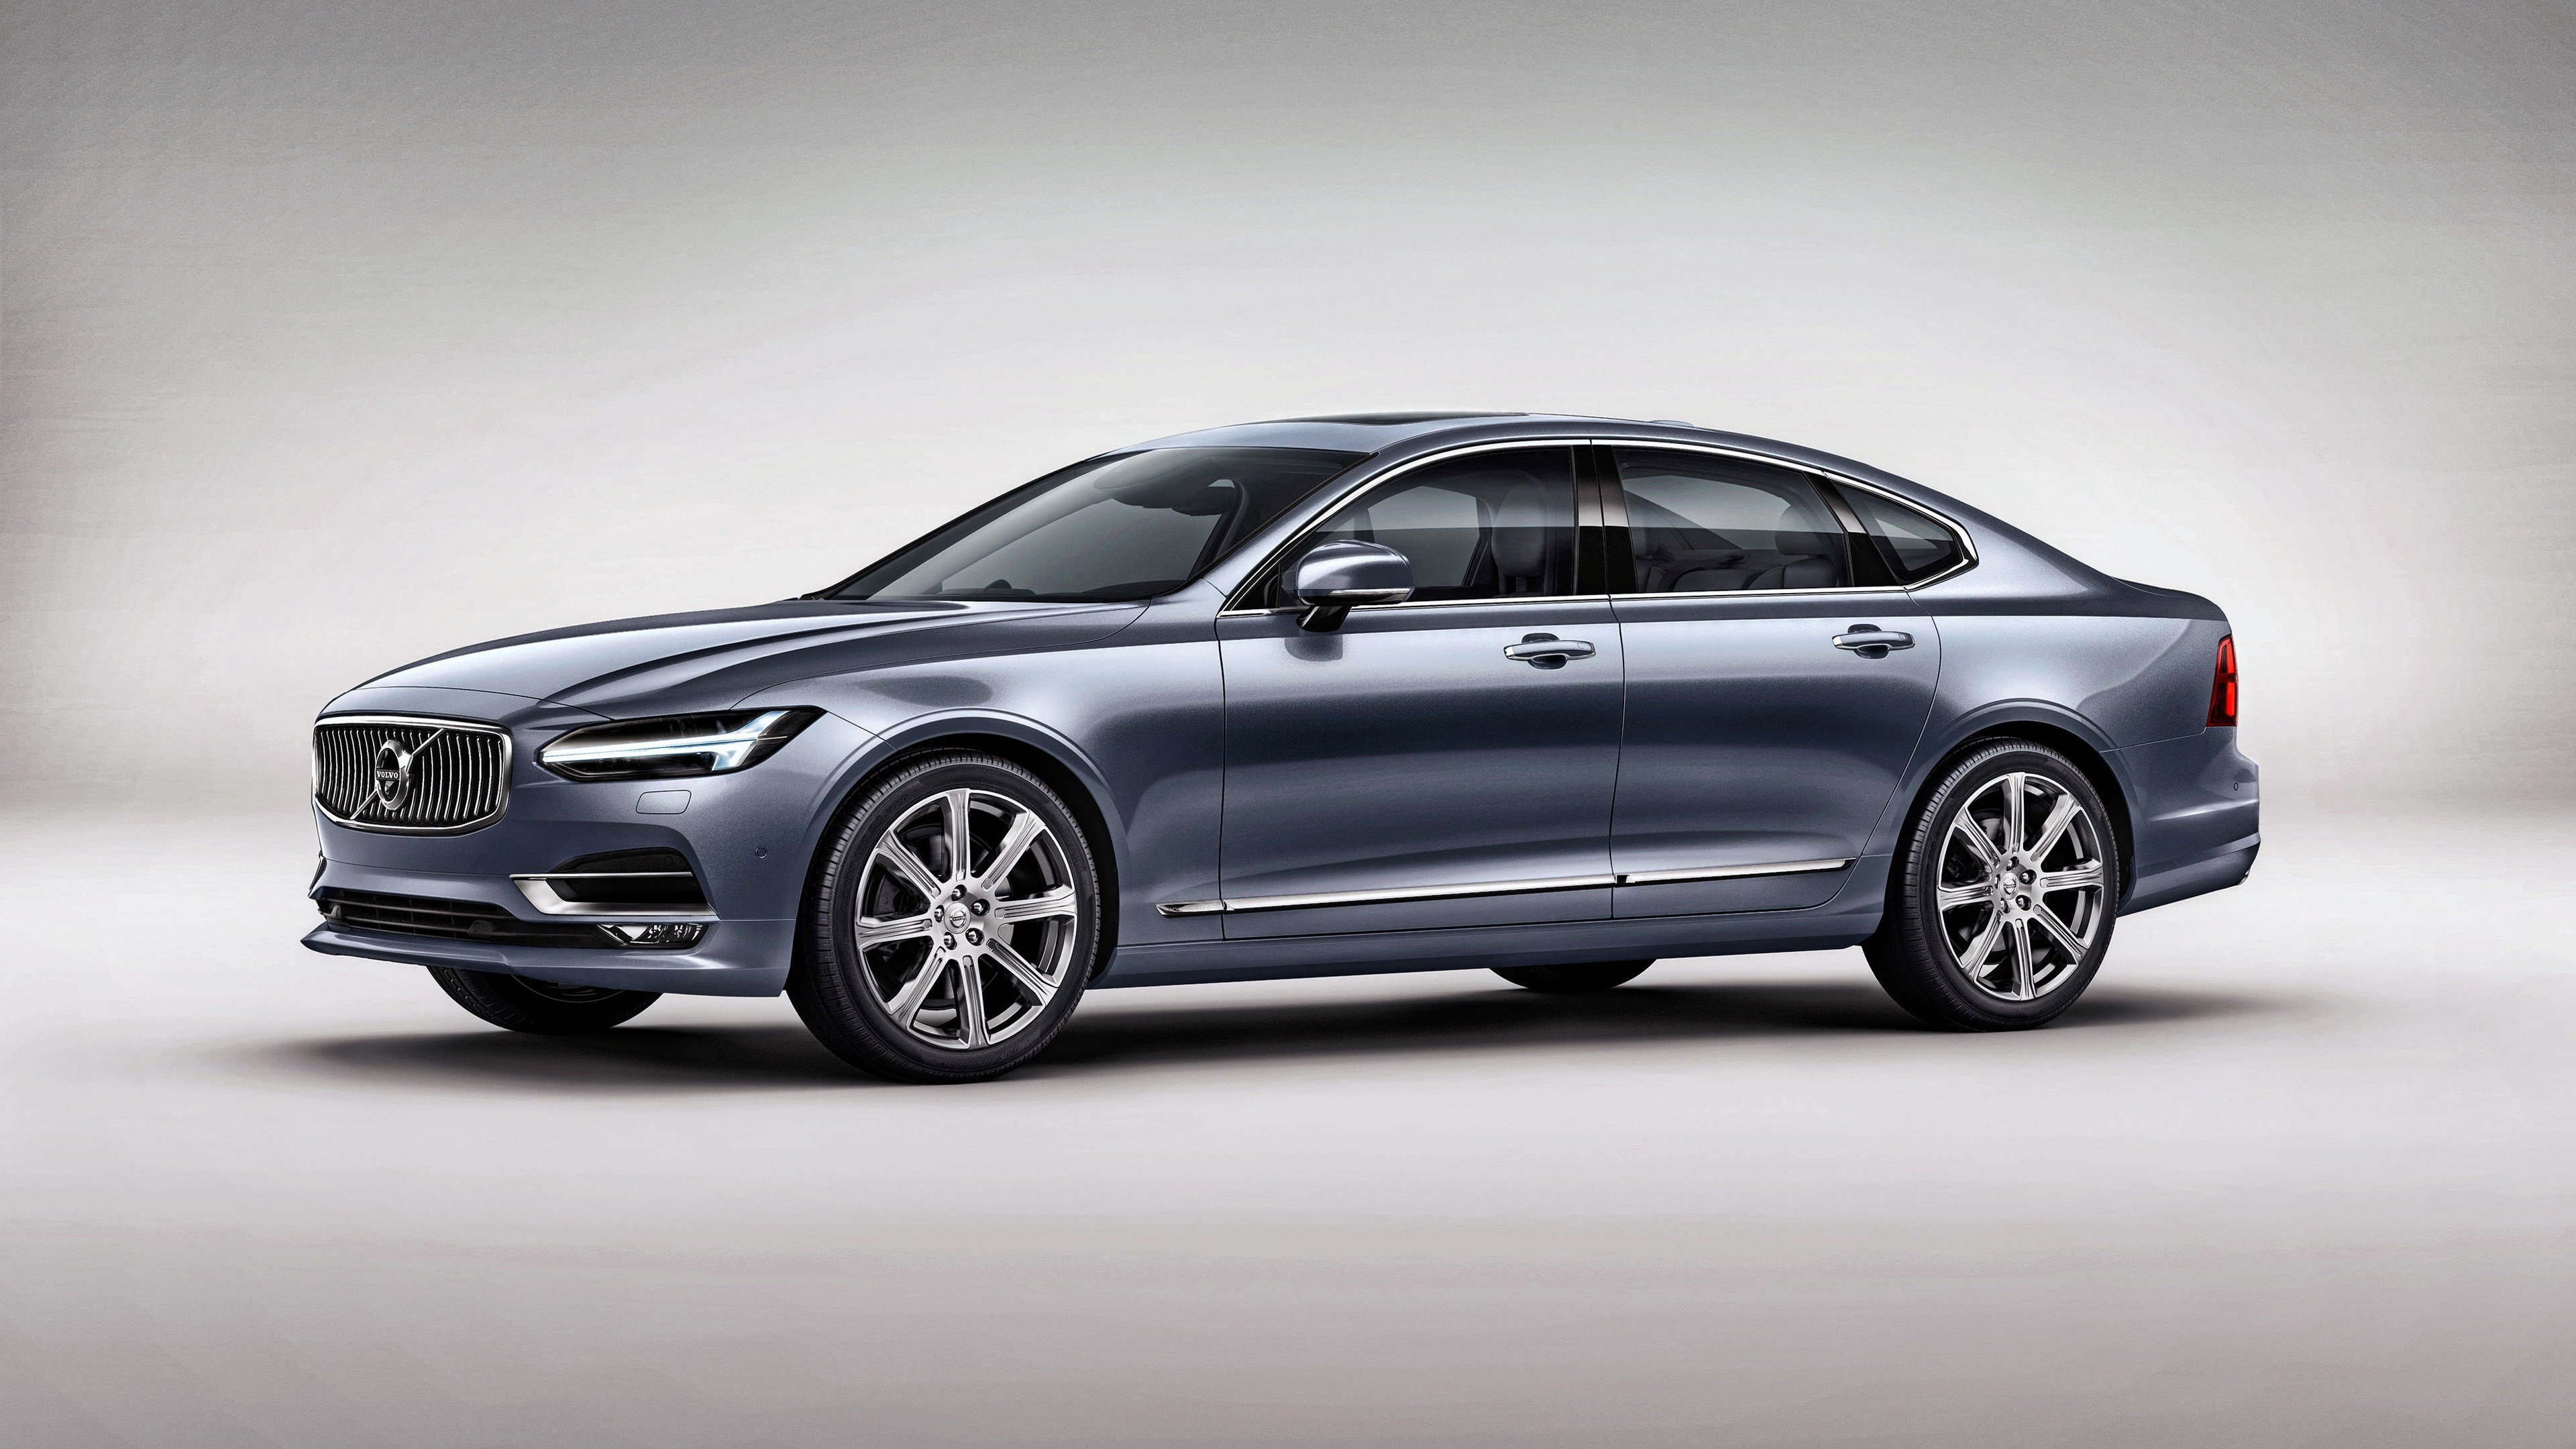 New 2017 Volvo S90 4K Wallpaper Hd Car Wallpapers Id 7006 On This Month